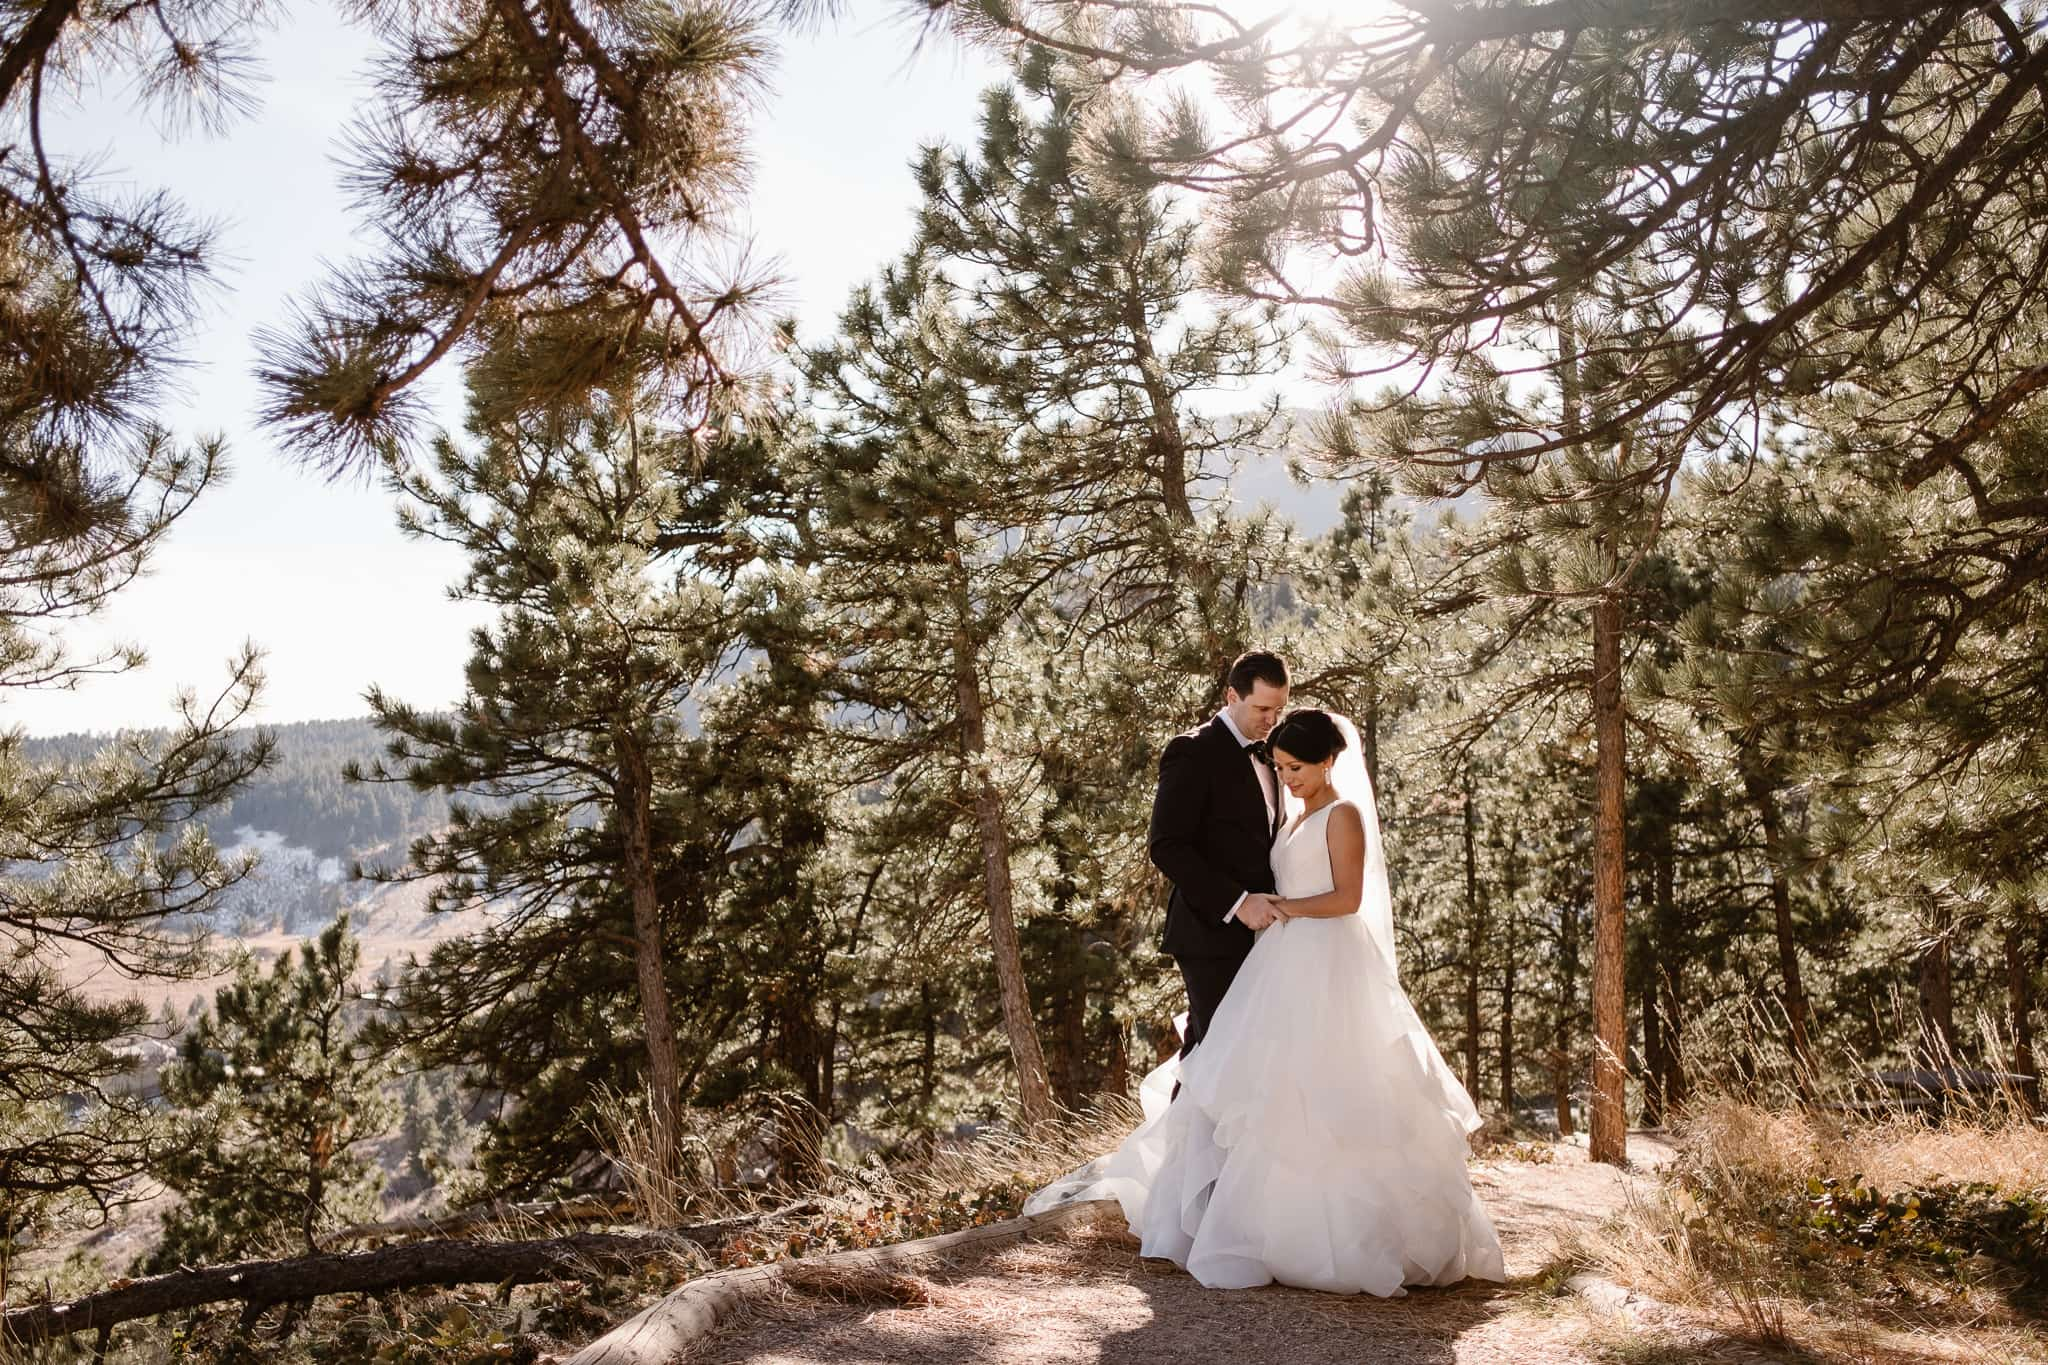 Bride and groom portraits in the trees at Flagstaff Mountain , Boulder wedding photographer, Colorado wedding photographer, St Julien wedding with mountain wedding photos